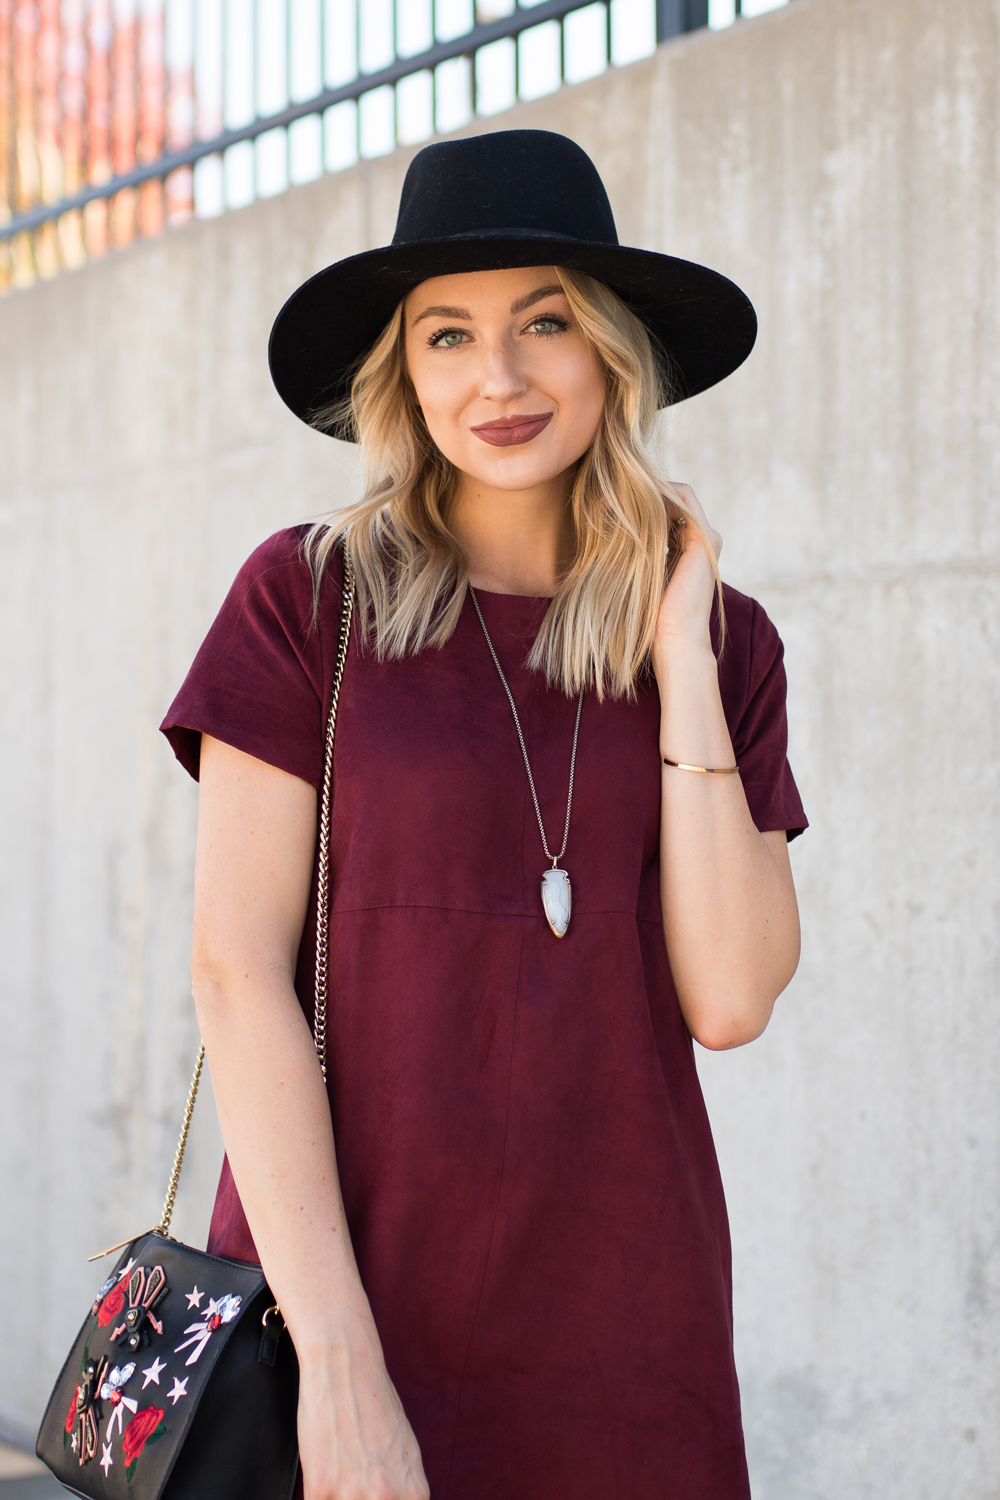 Burgundy dress and lipstick